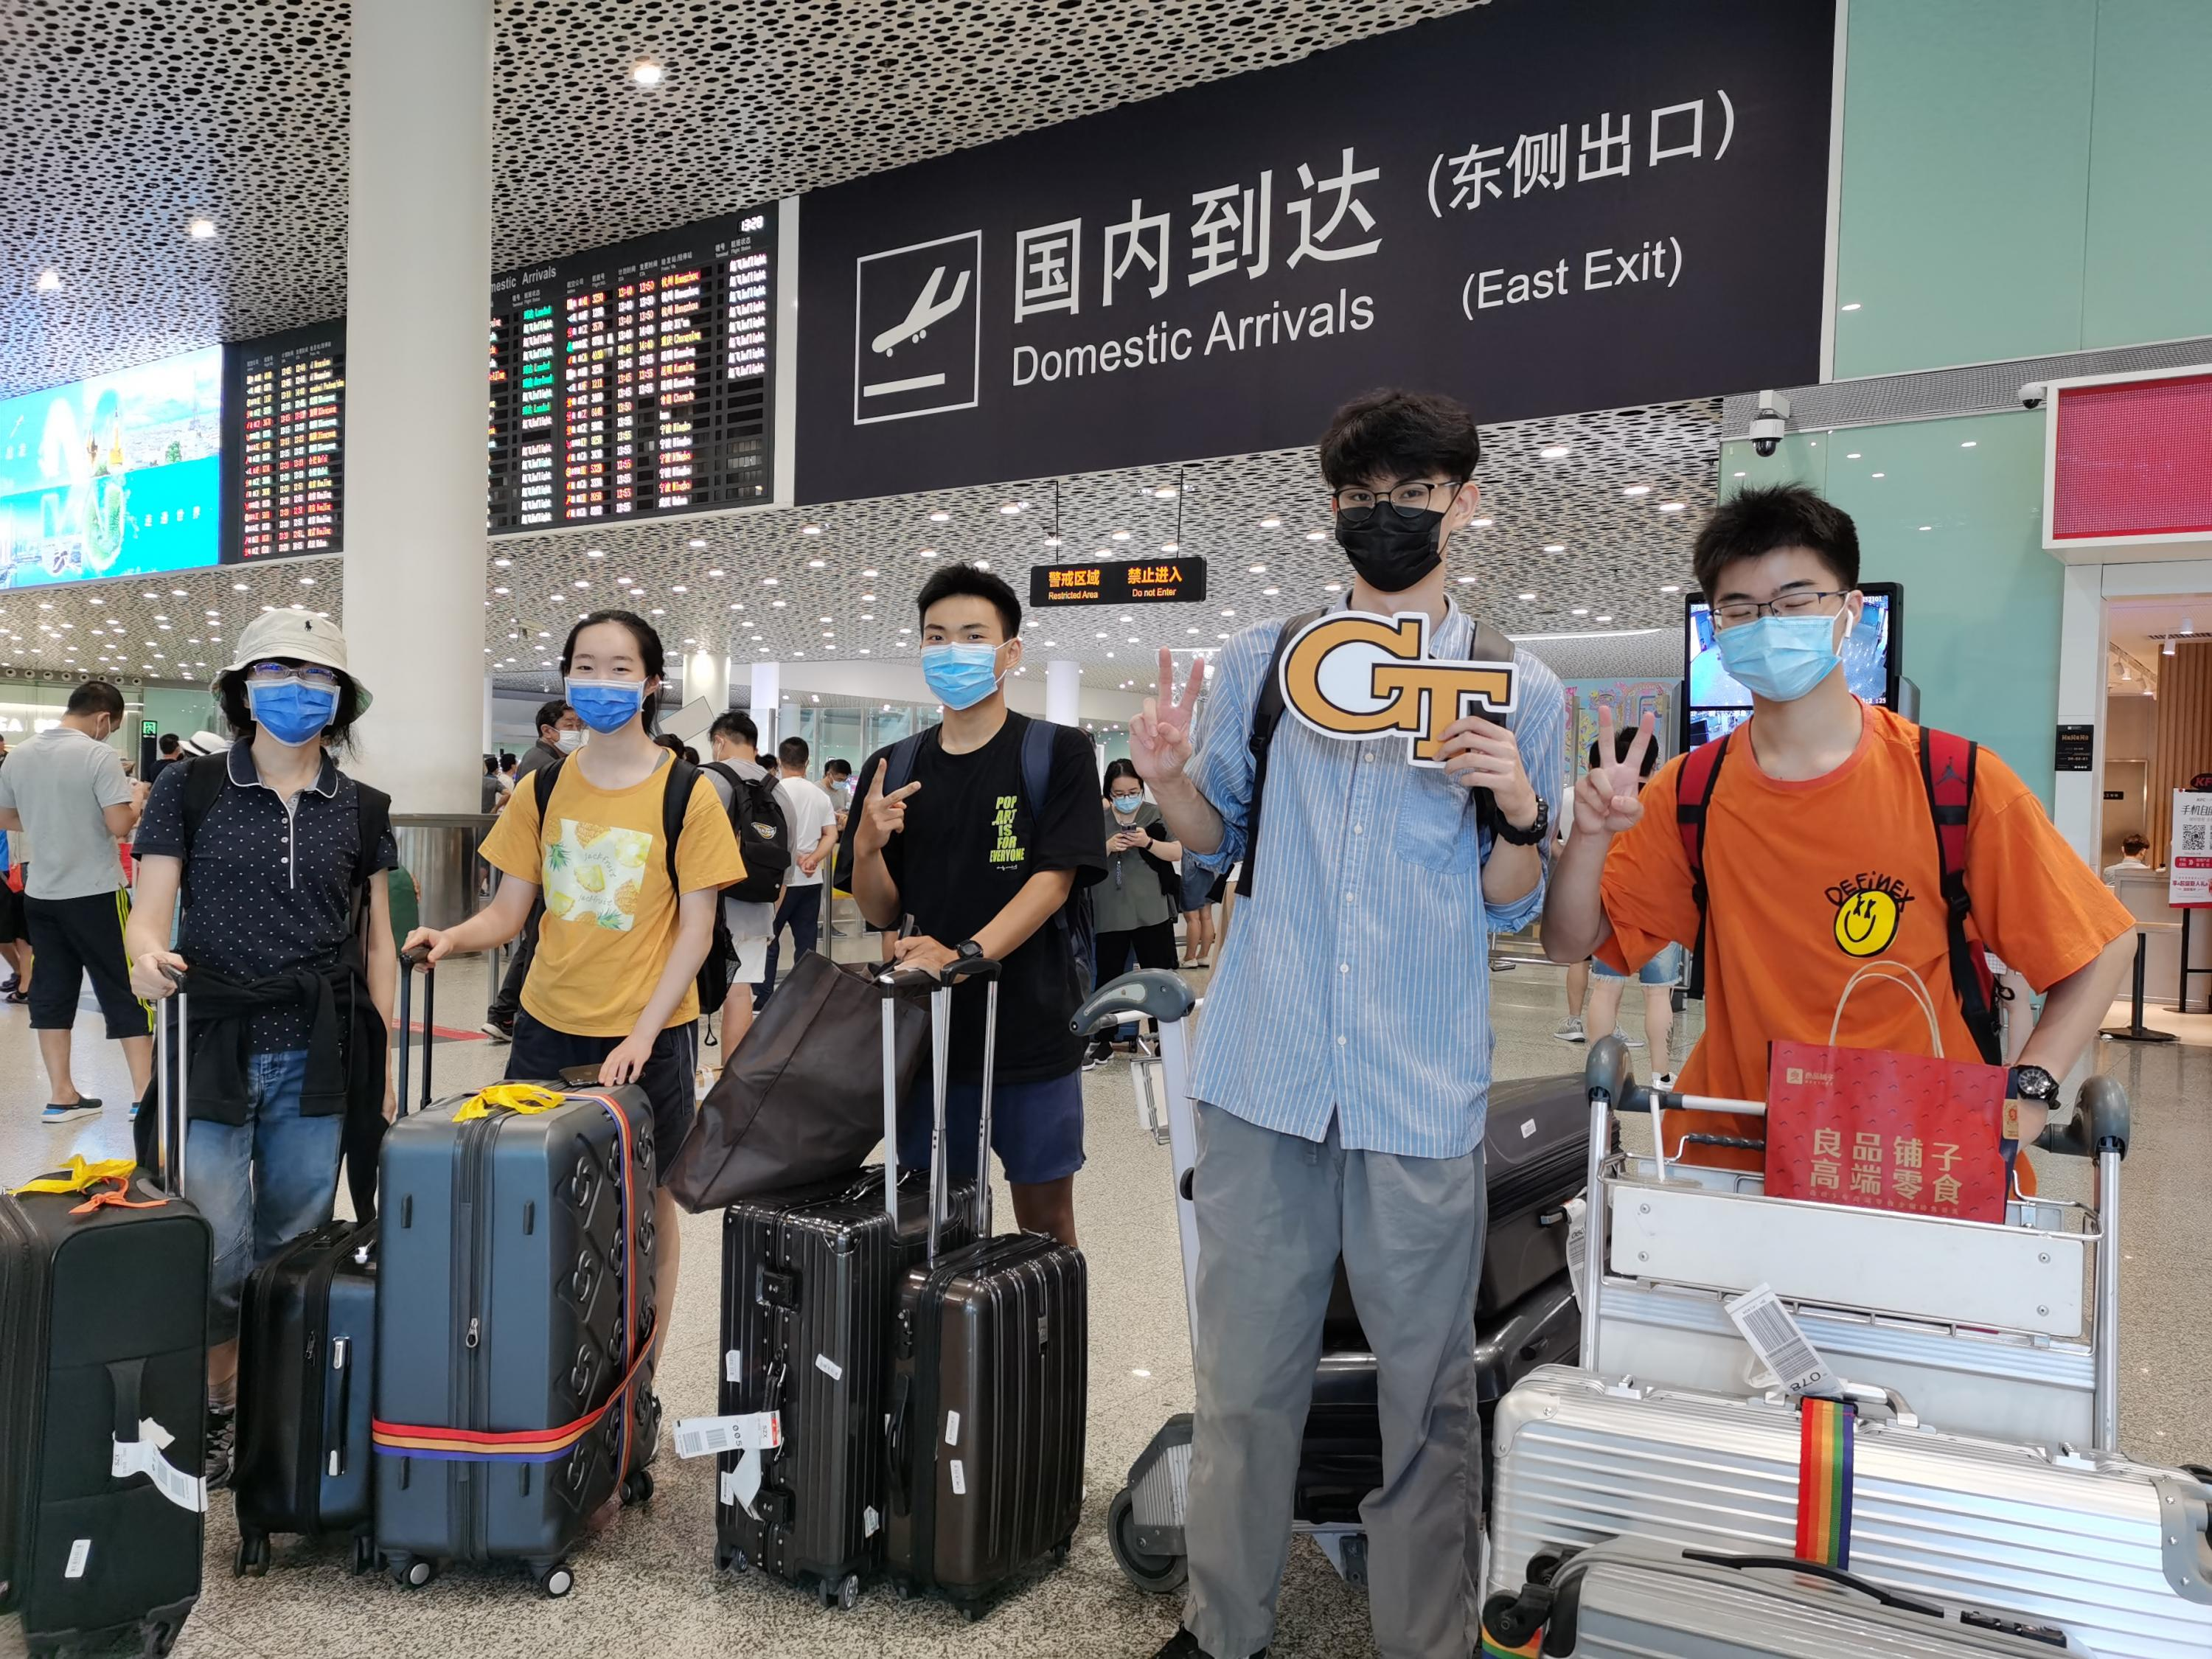 Georgia Tech first-year students arrive at Shenzhen Airport.